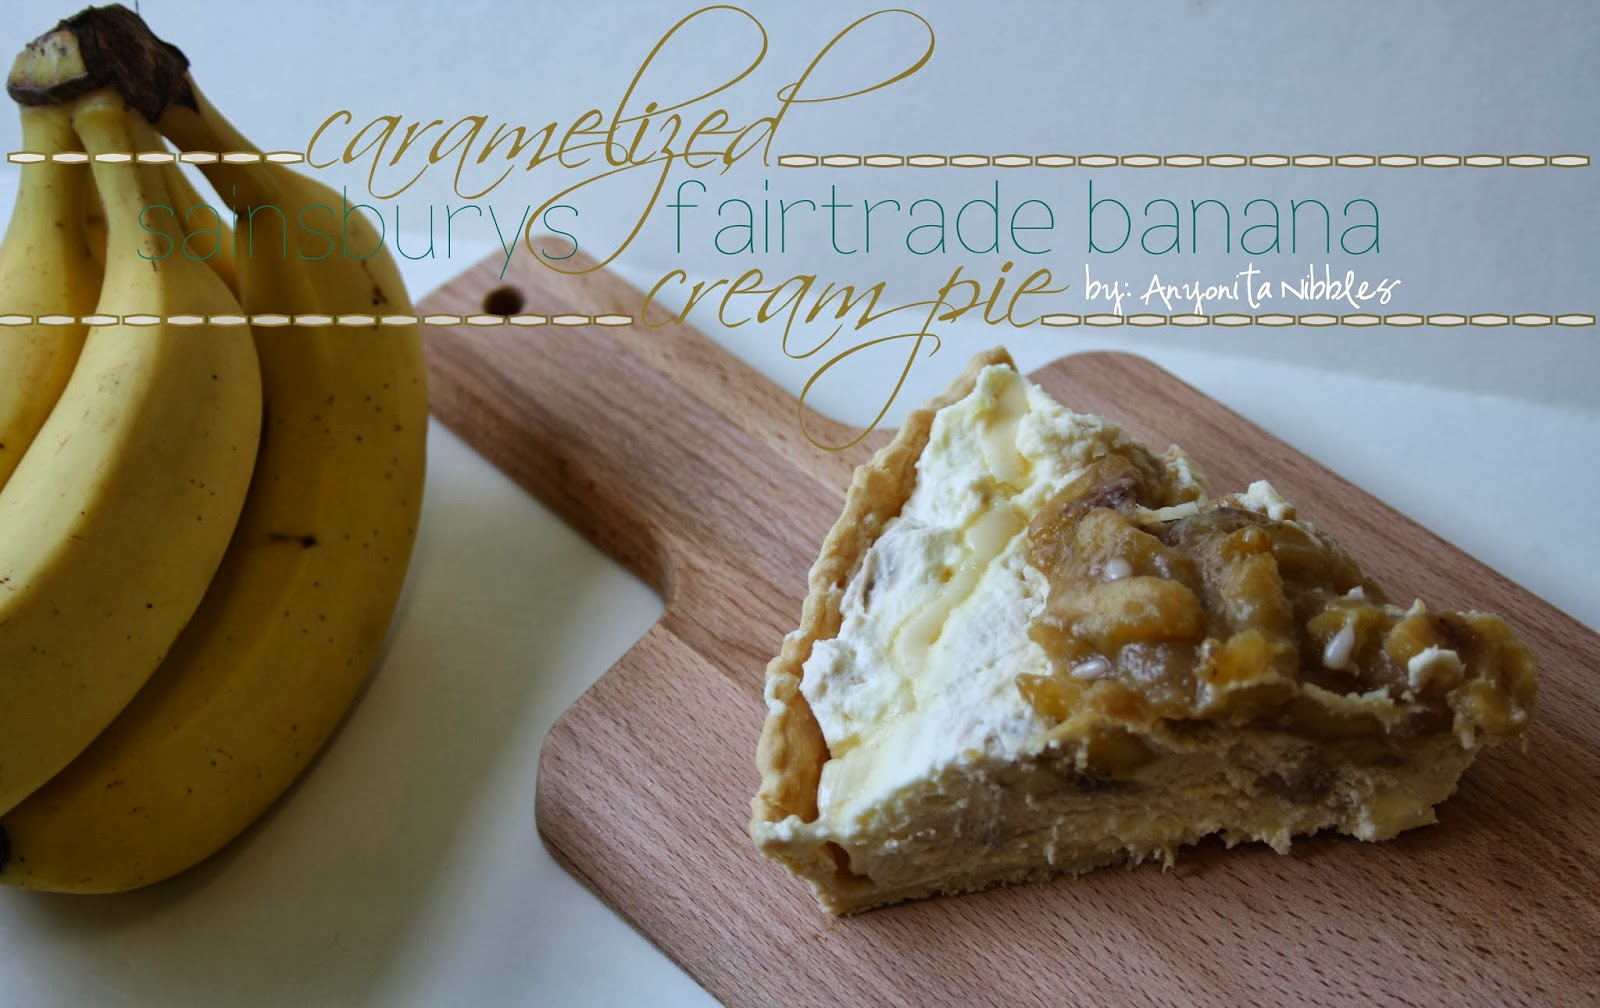 A slice of Caramelized Sainsburys Fairtrade Banana Cream Pie from www.anyonita-nibbles.co.uk